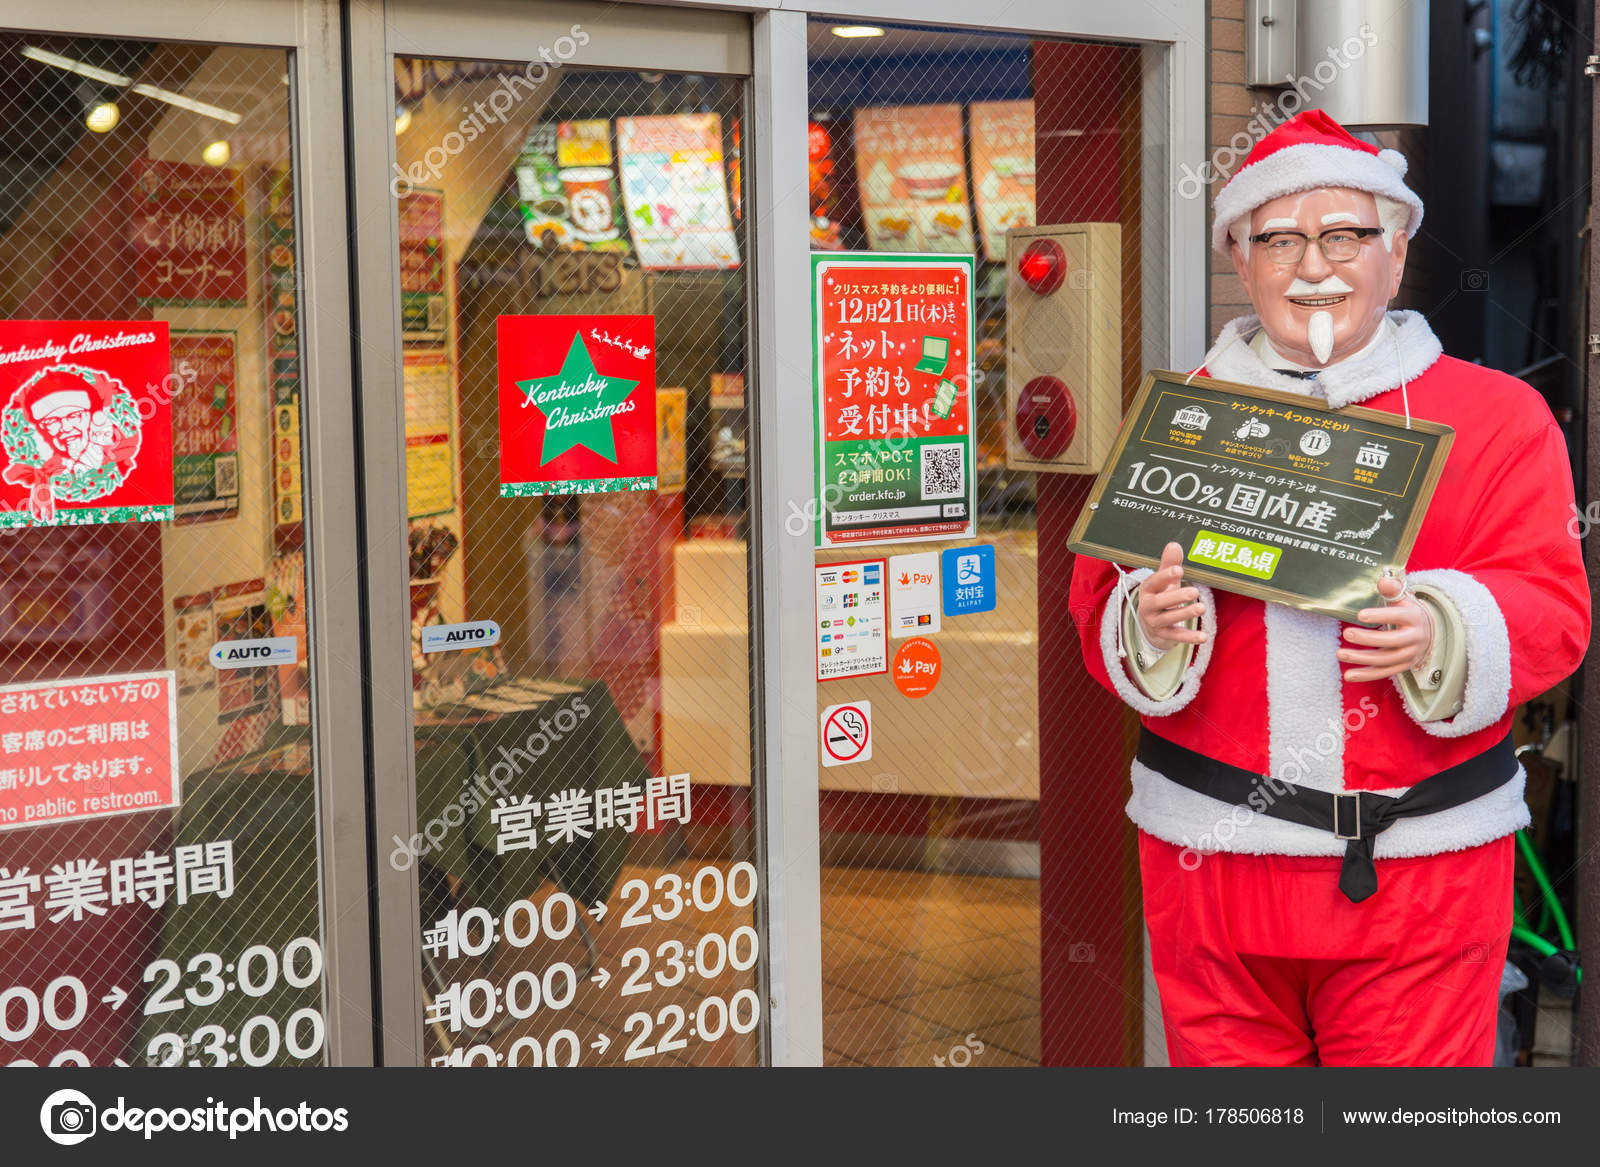 Kfc Japan Christmas.Kentucky Fried Chicken Kfc Japan Decoration Santa Cause